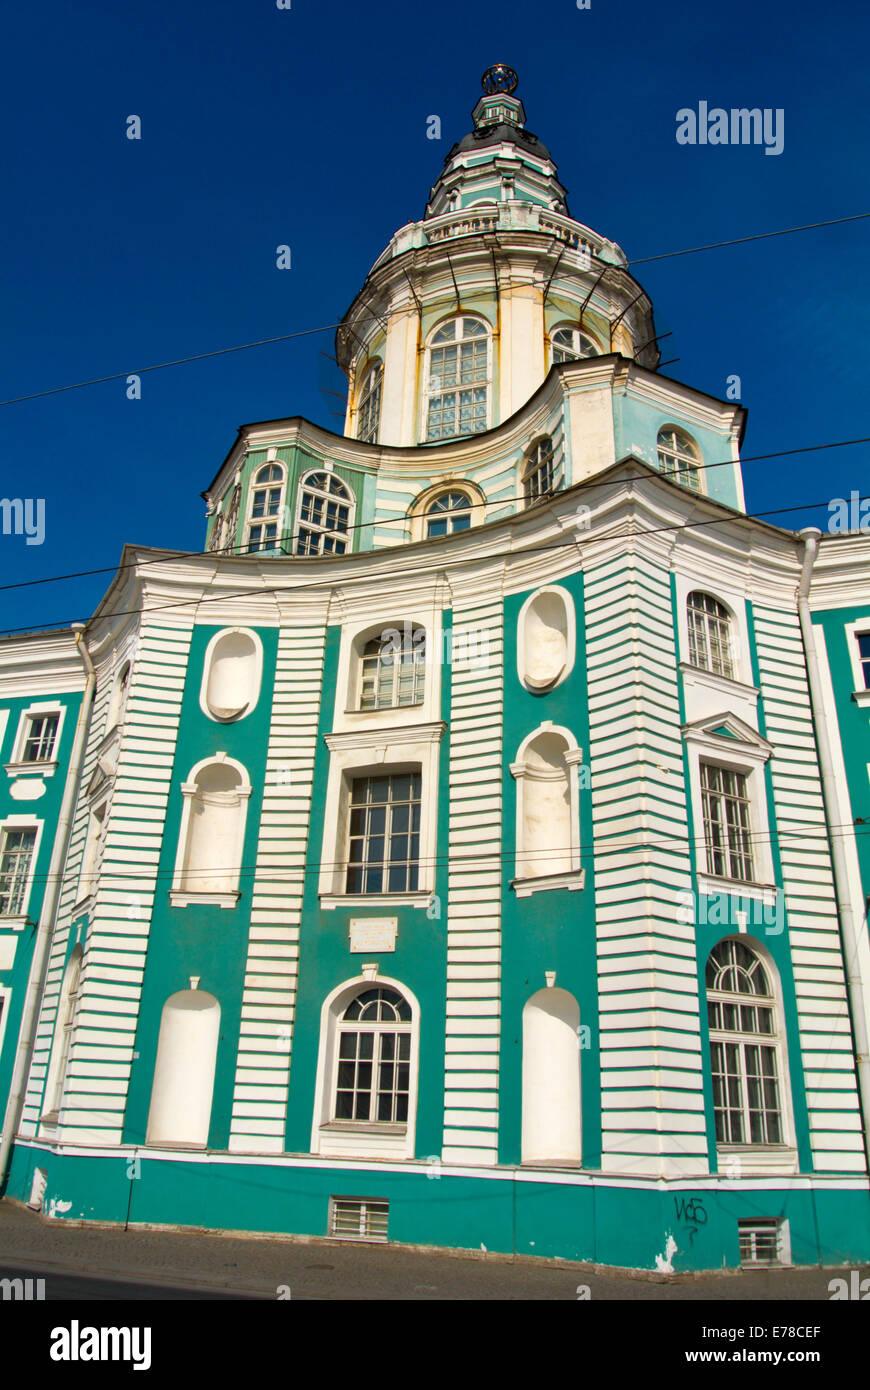 Kunstkamera (1727), housing anthropology and ethnology museum, embankment of Neva river, Saint Petersburg, Russia, - Stock Image